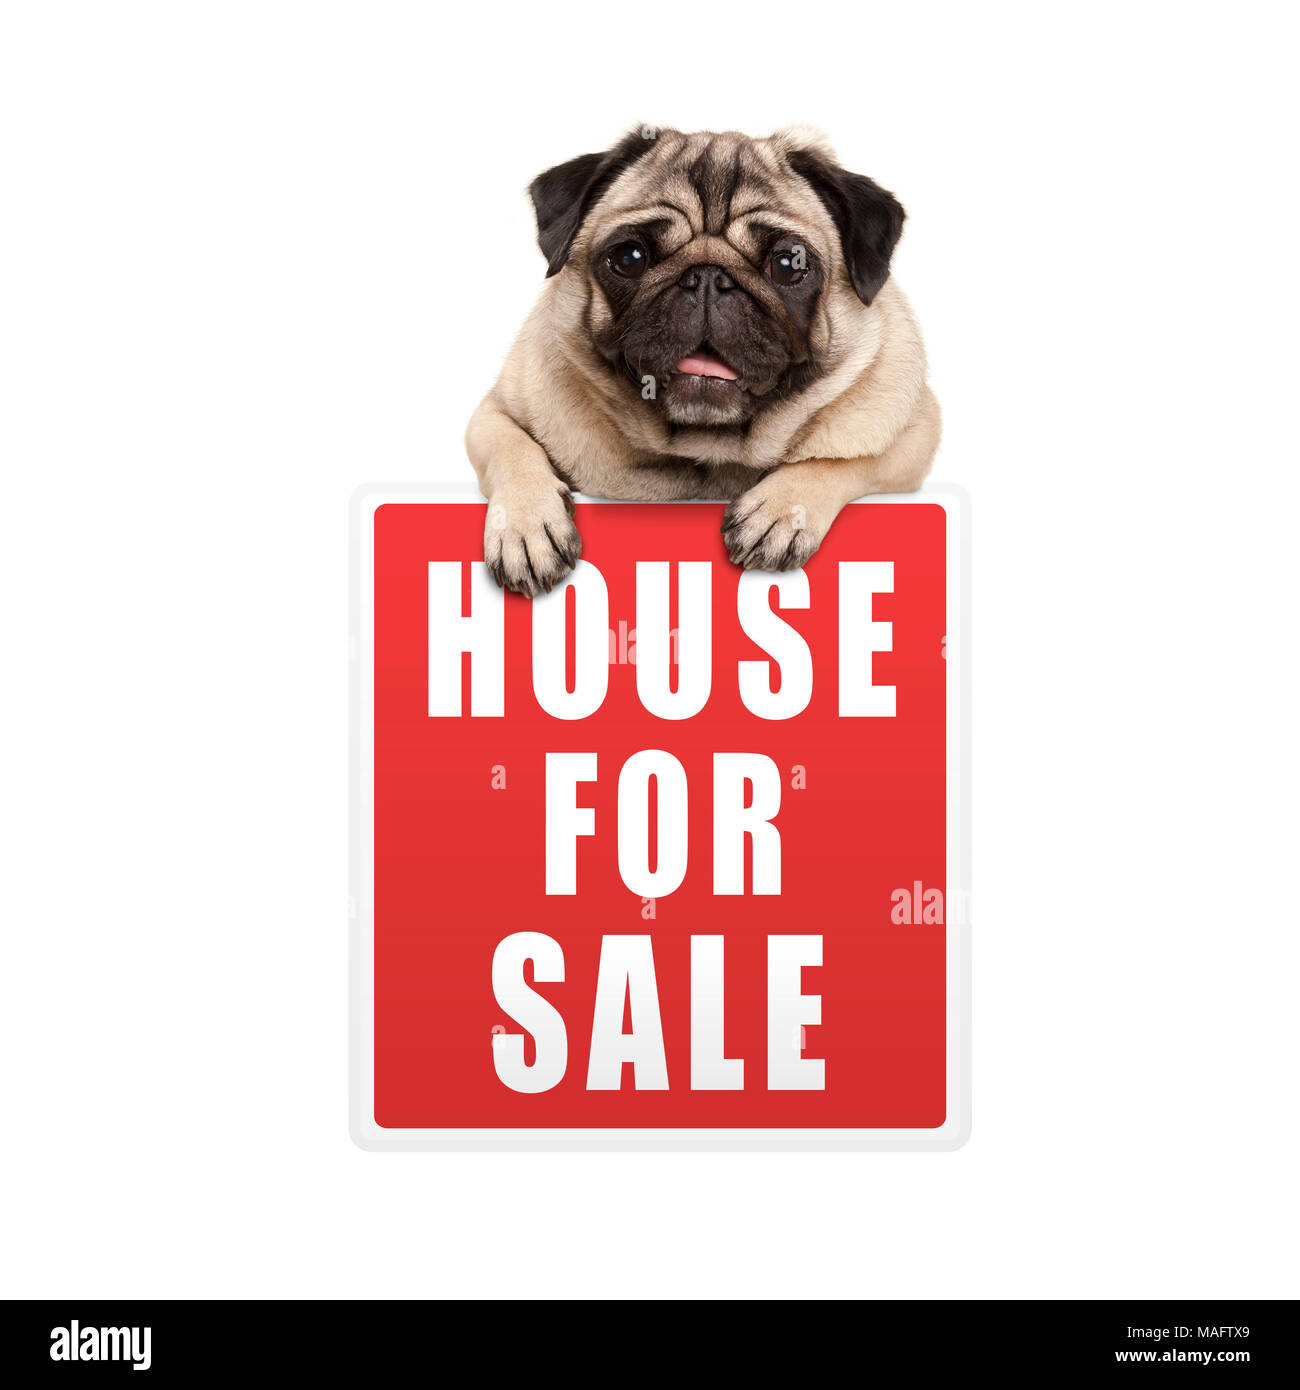 cute pug puppy dog hanging with paws on red house for sale sign, isolated on white background - Stock Image